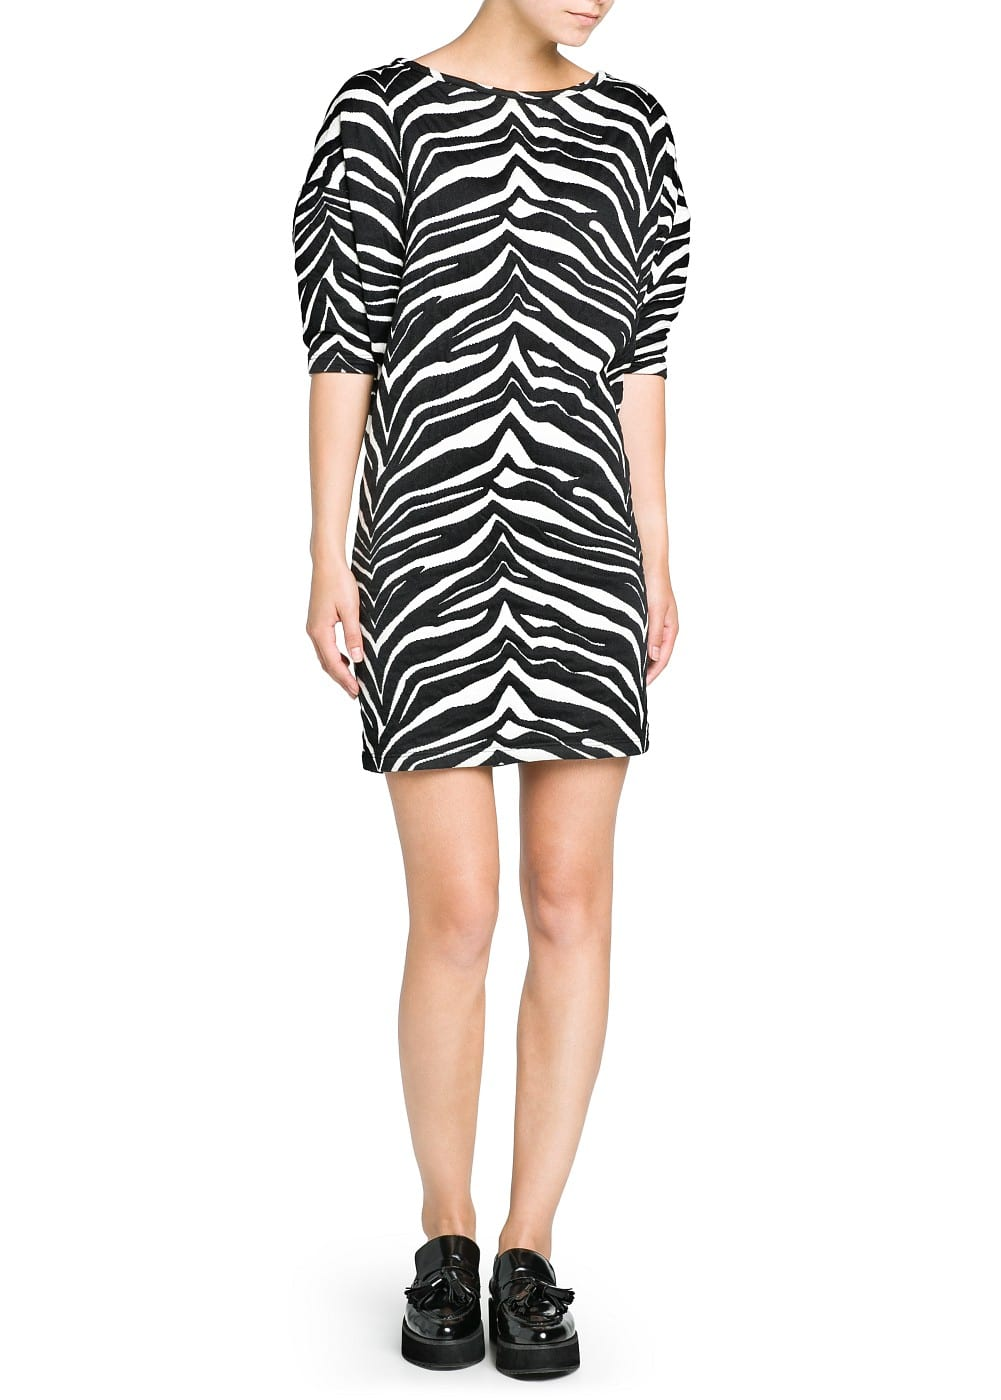 Zebra jacquard dress